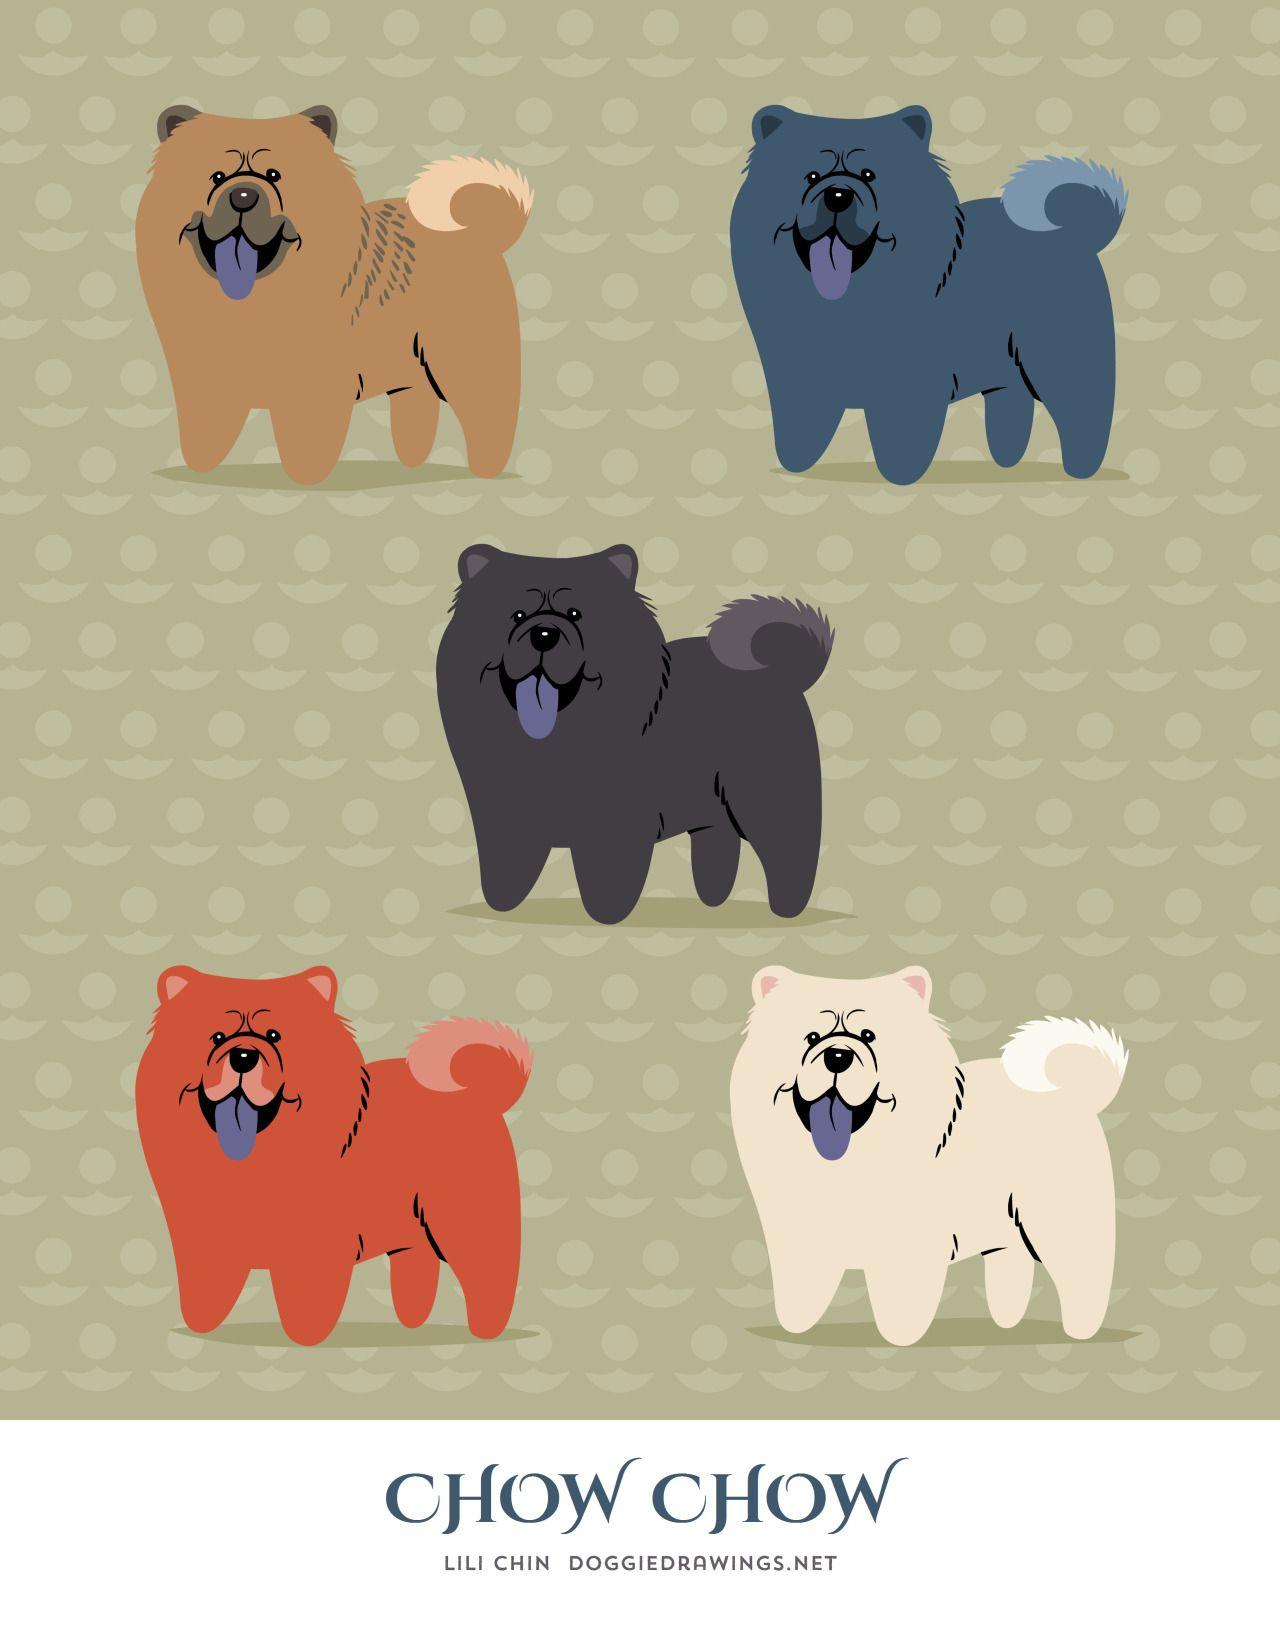 Chow Chow By Lili Chin From Dog Colors On Tumblr Chow Chow Chow